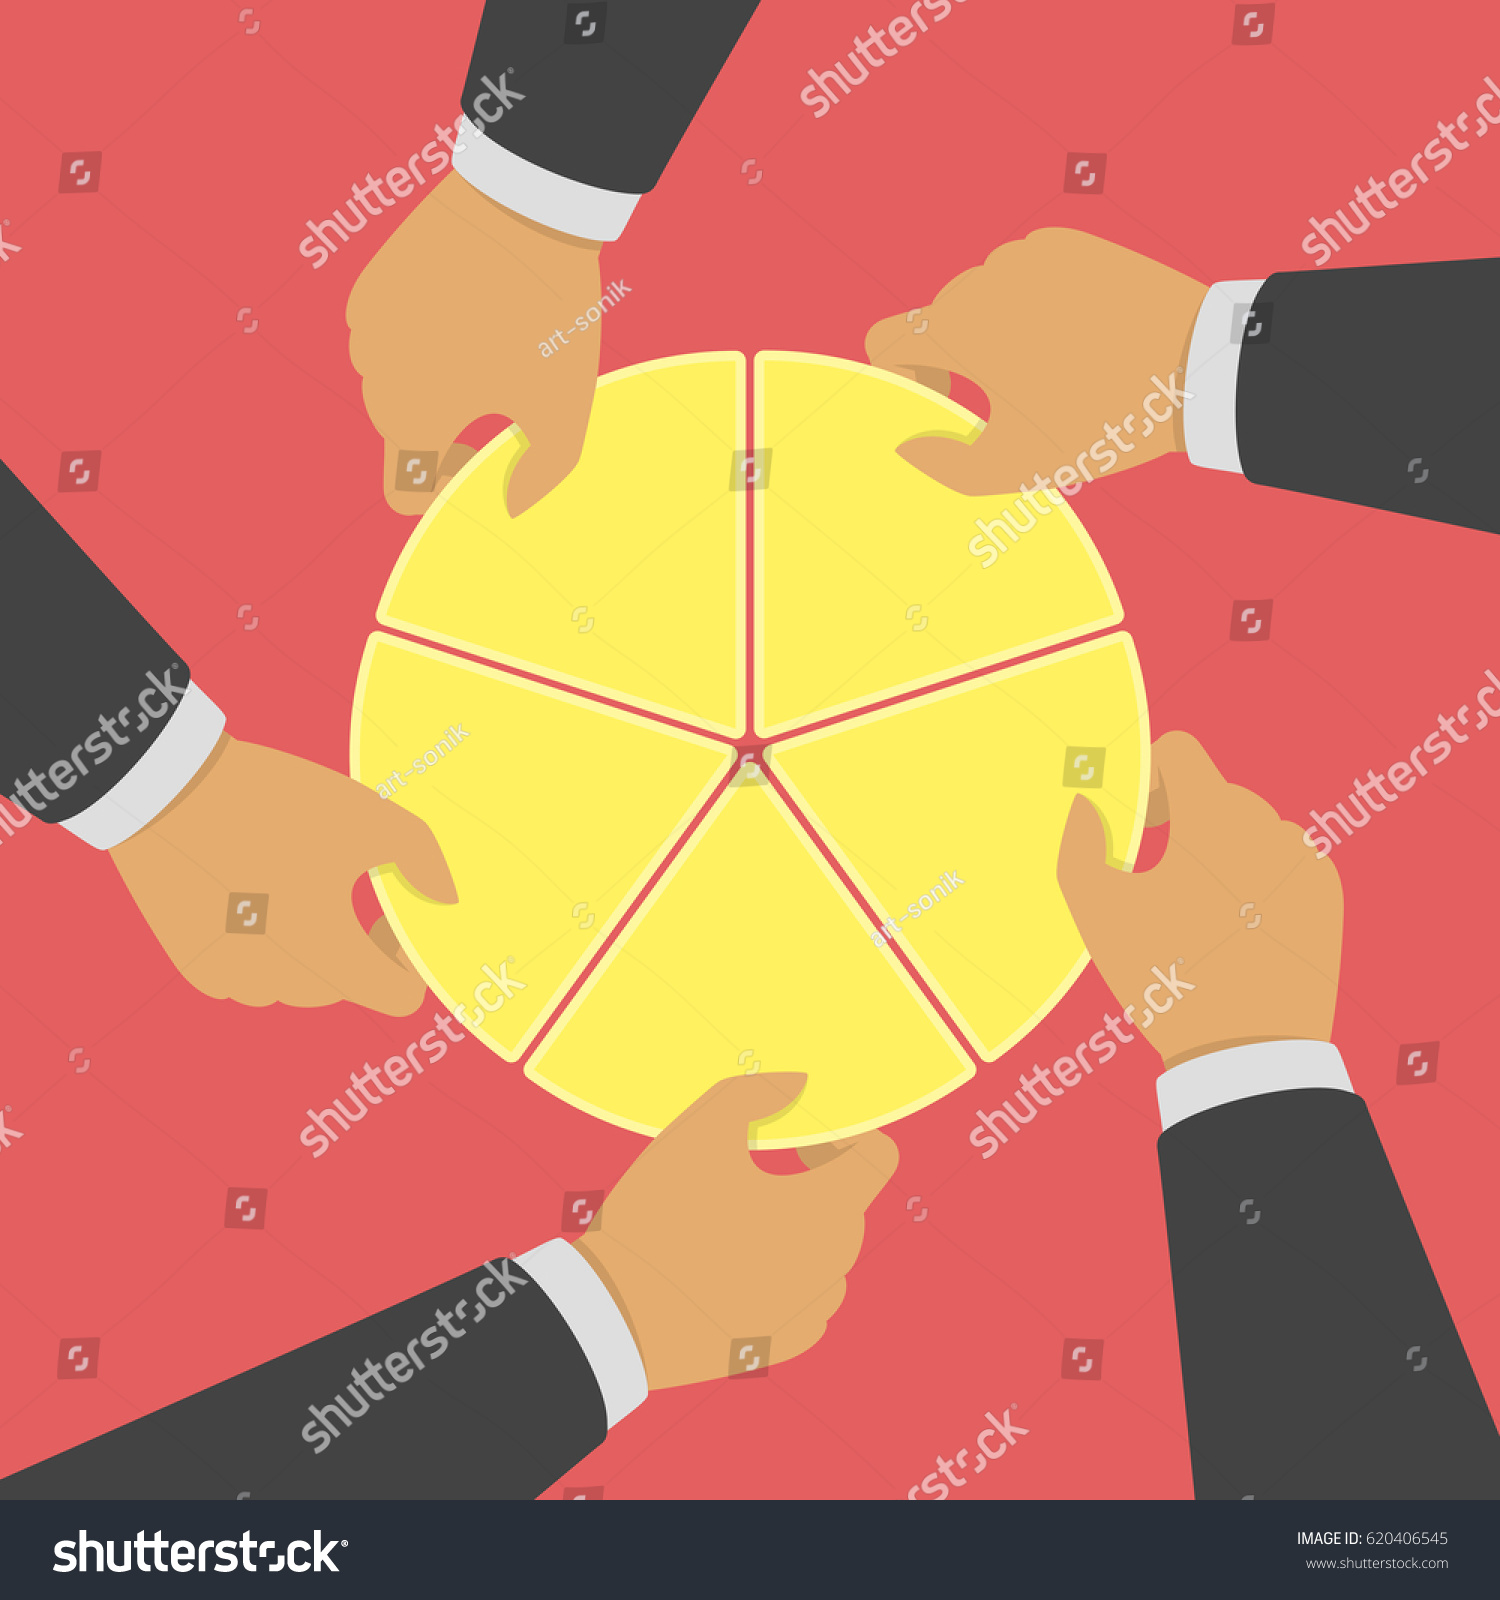 Hands picking pie chart parts financial stock vector 620406545 hands picking pie chart parts financial competing or market share business concepts competing nvjuhfo Gallery